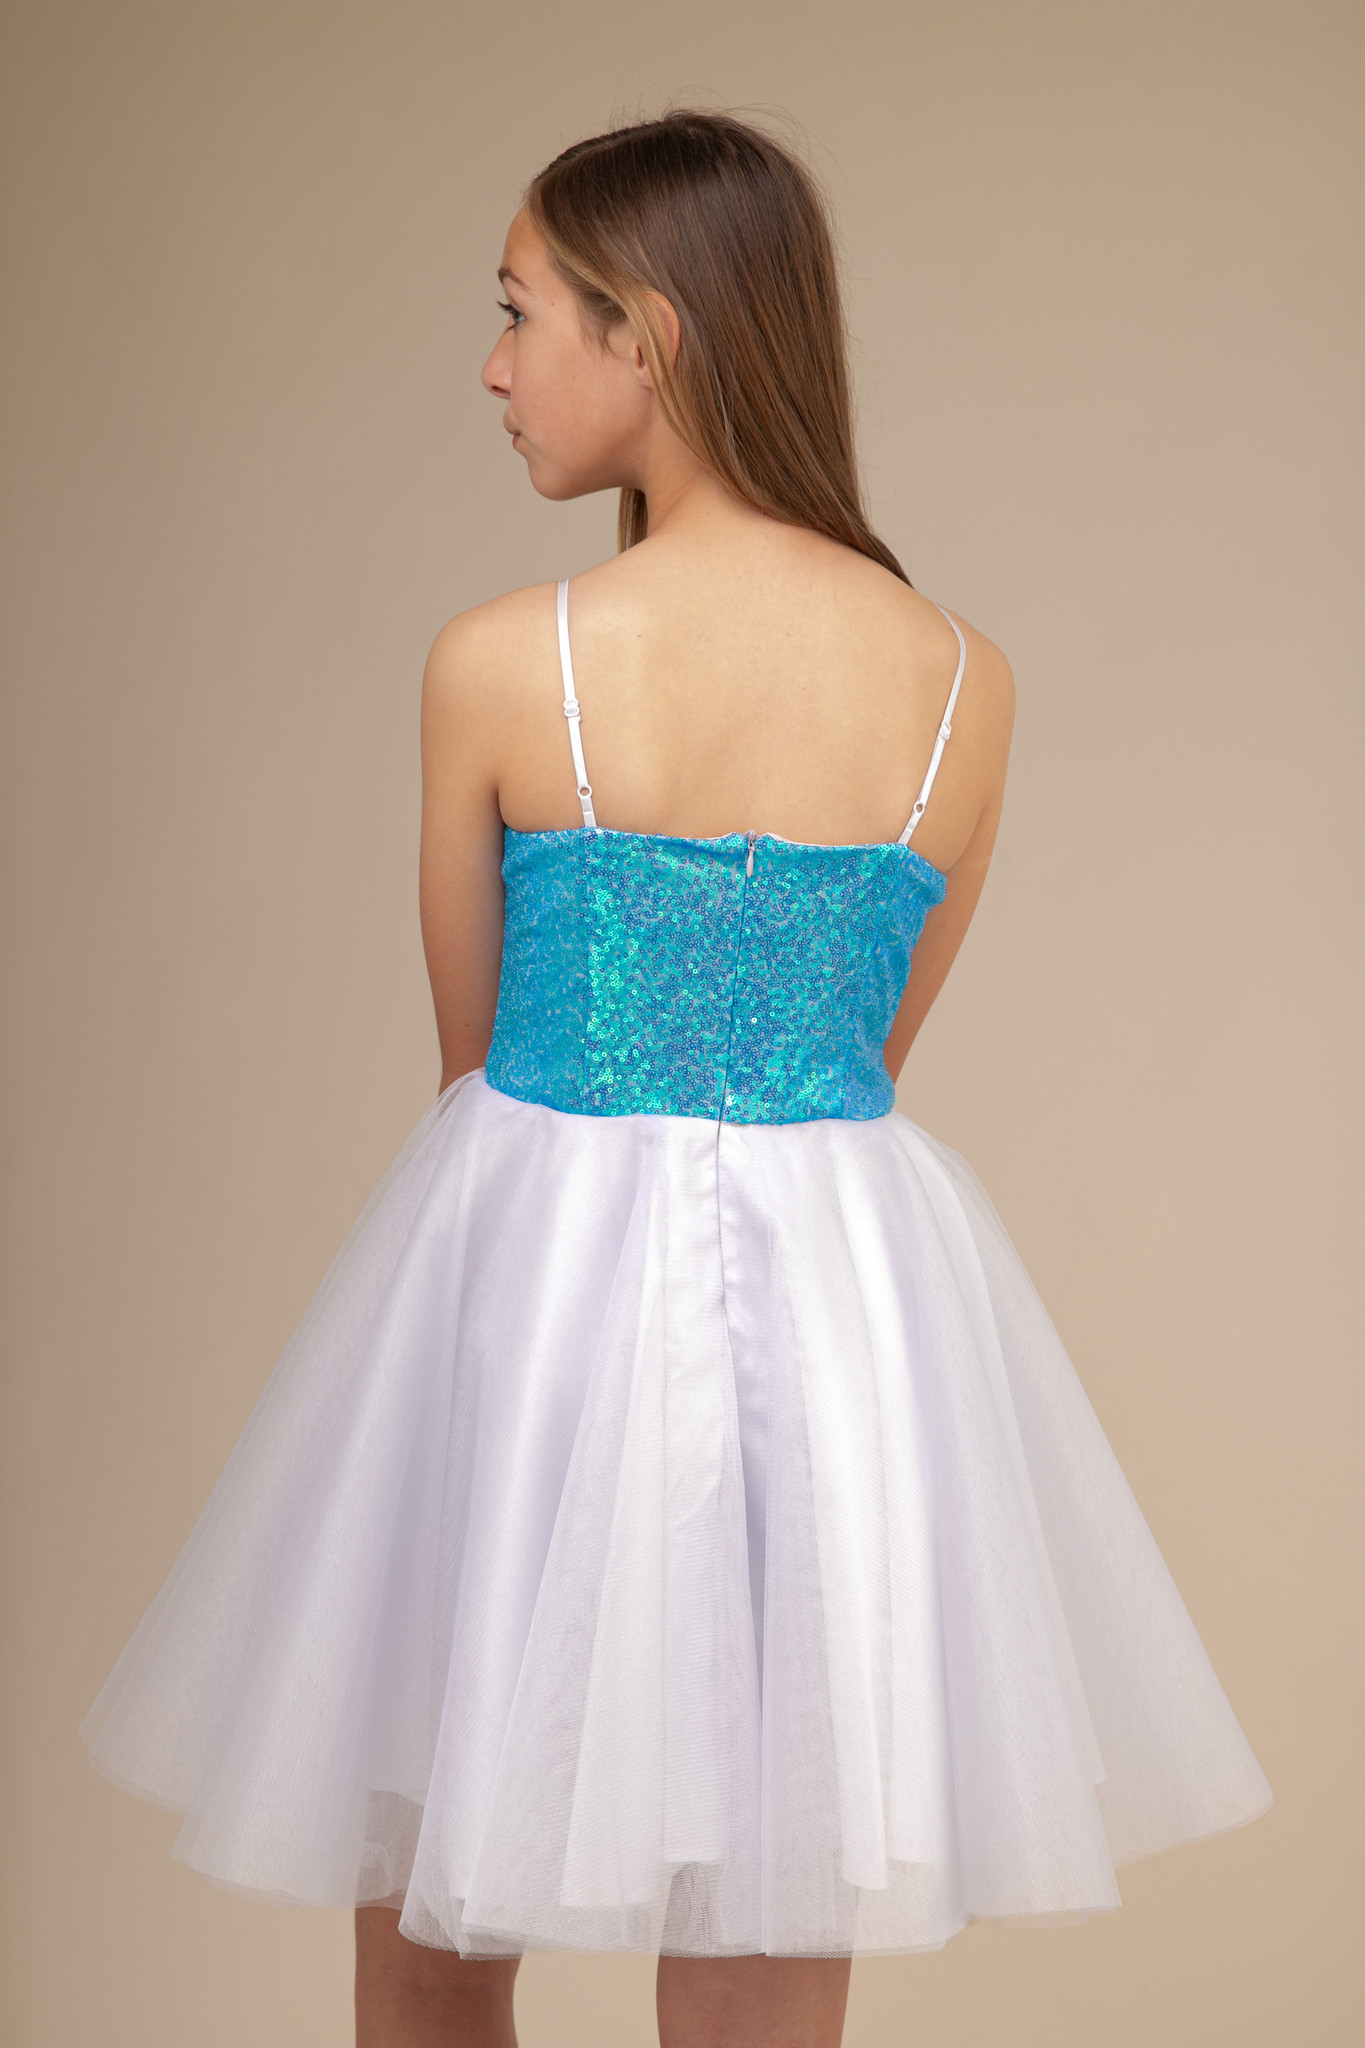 Turquoise Sequin Party Dress in Longer Length.